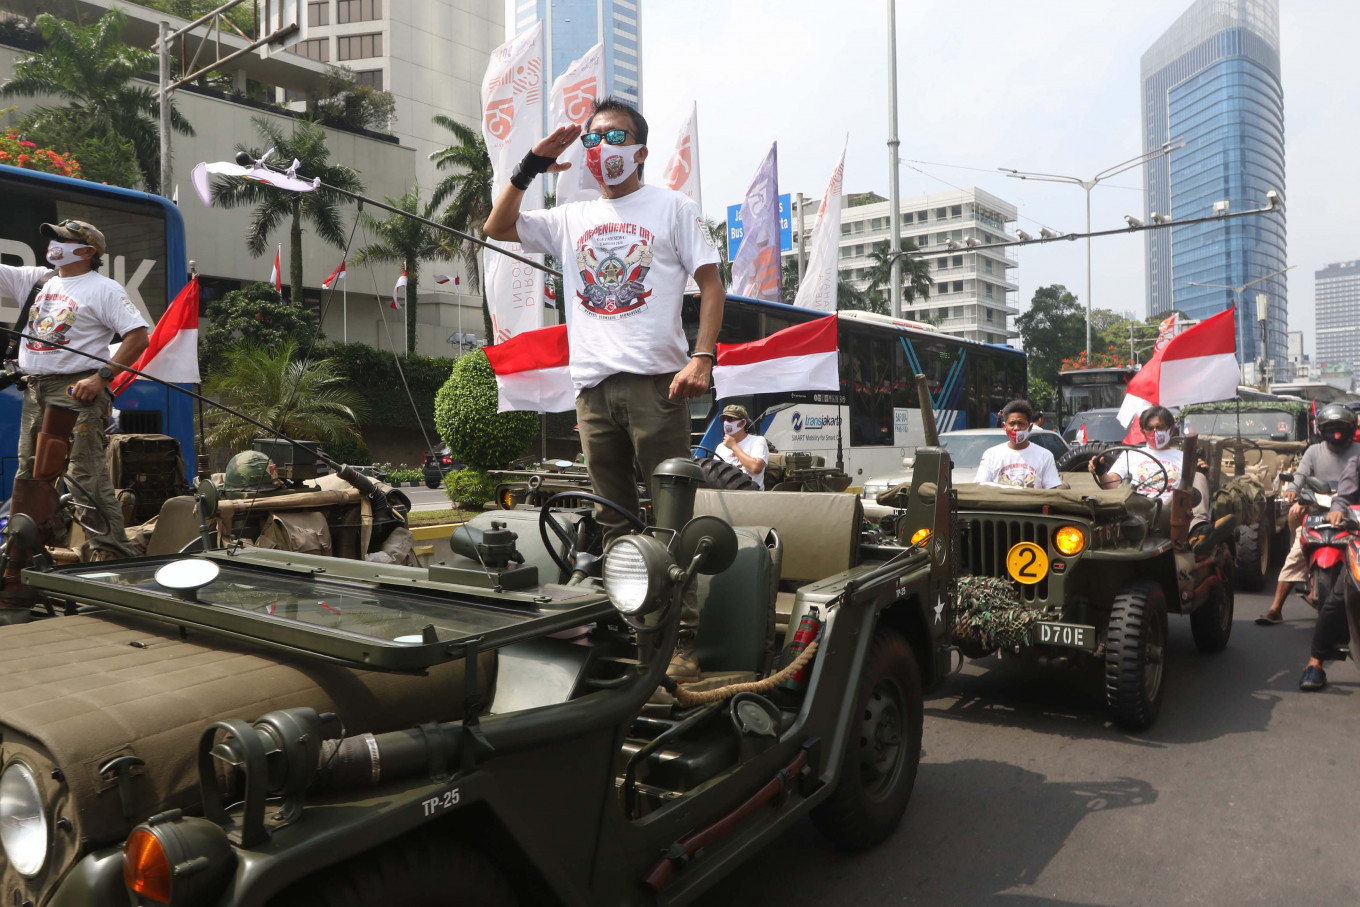 Historic countdown: Members of Willys Owners Indonesia (WOI) salute during a commemoration of detik detik (seconds) ahead of Indonesia's independence proclamation at Hotel Indonesia traffic circle in Jakarta, on Monday, August 17, 2020. JP/Dhoni Setiawan